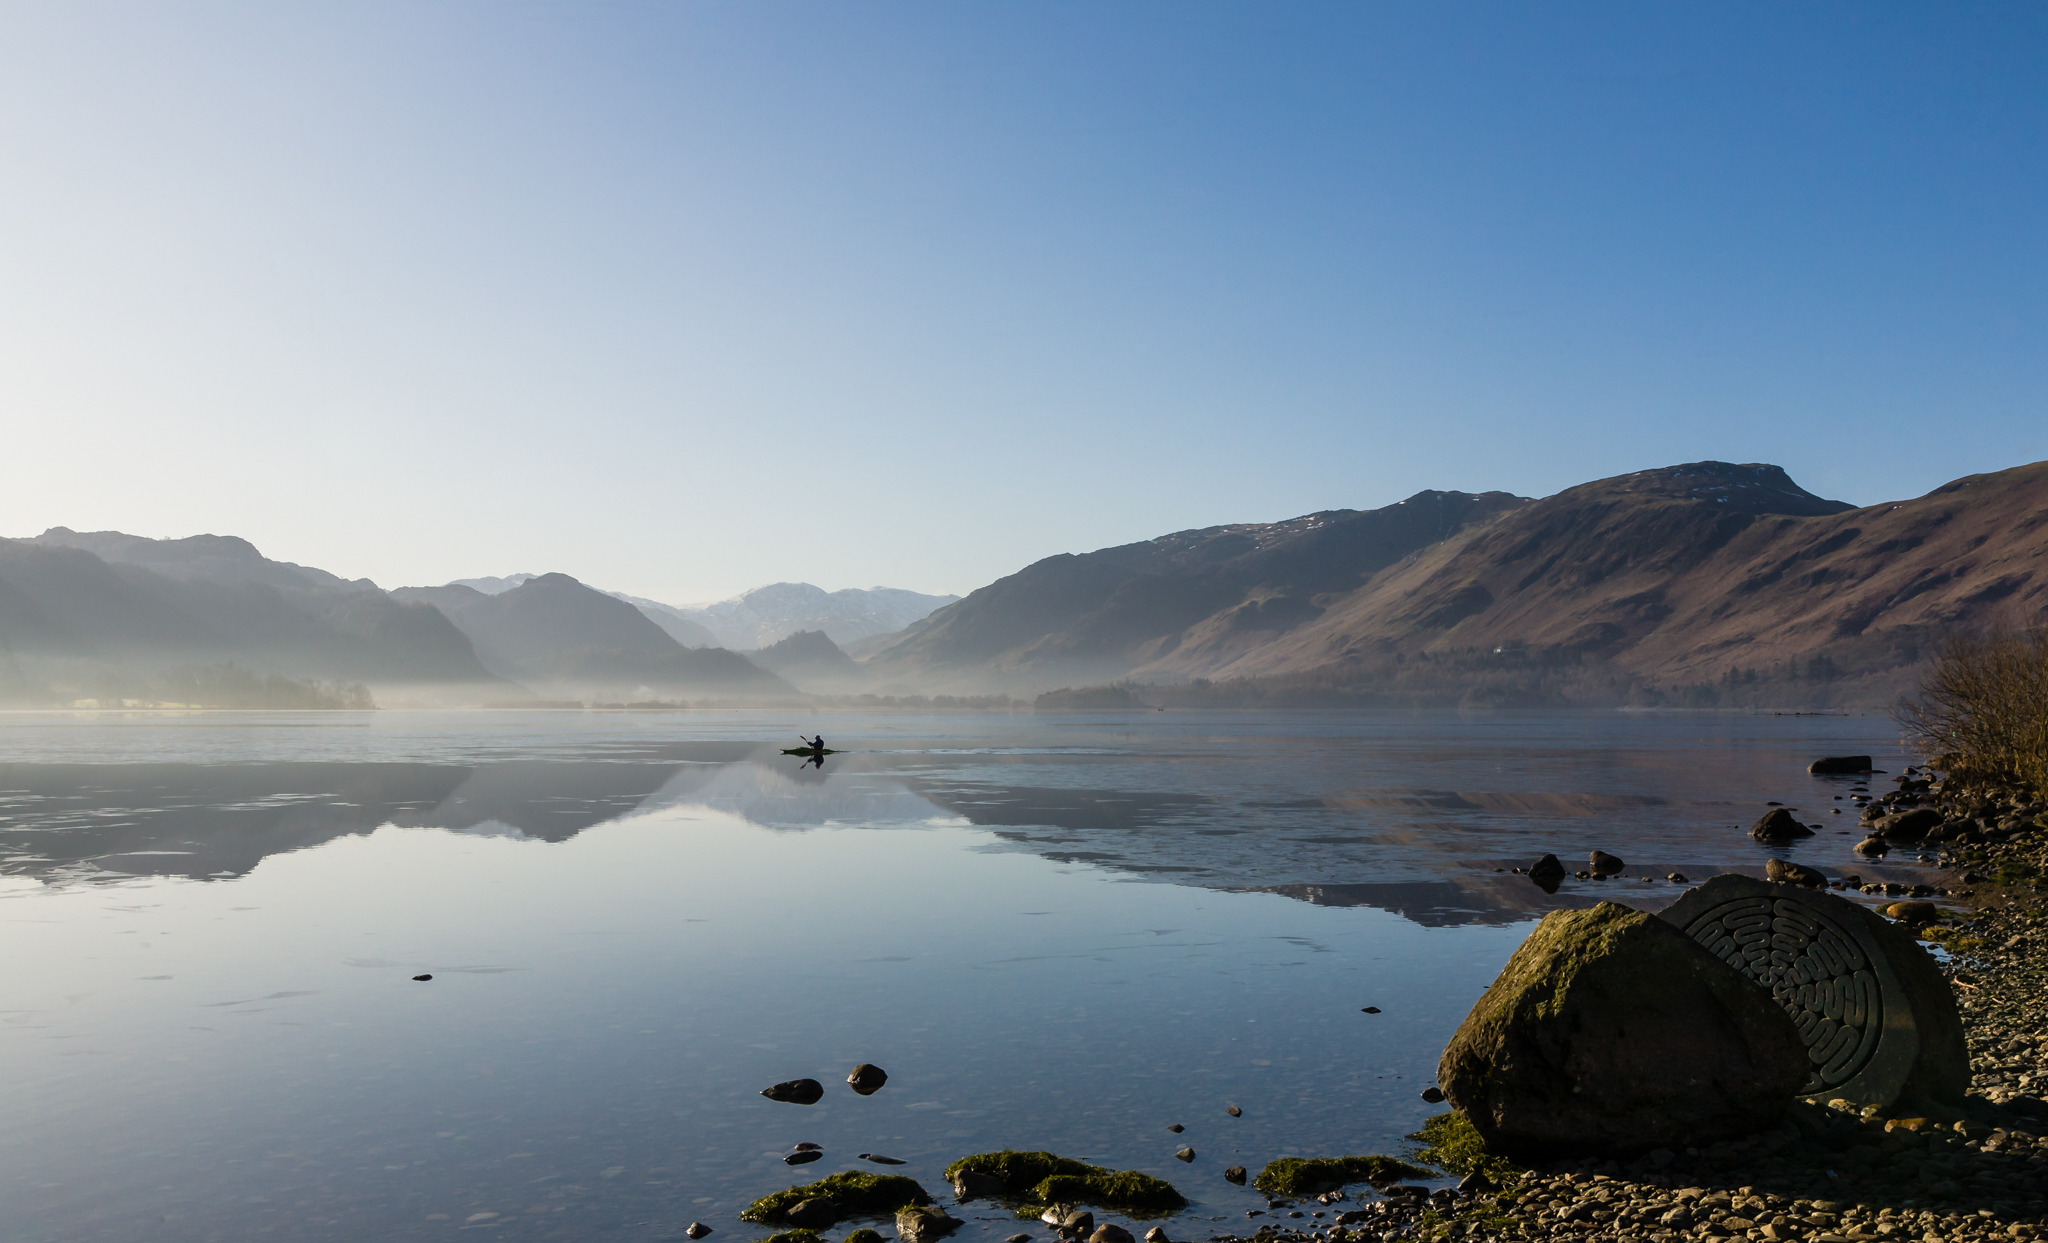 A man braves the early morning winters cold to canoe through the ice on Cumbria's Derwent Water near Keswick.